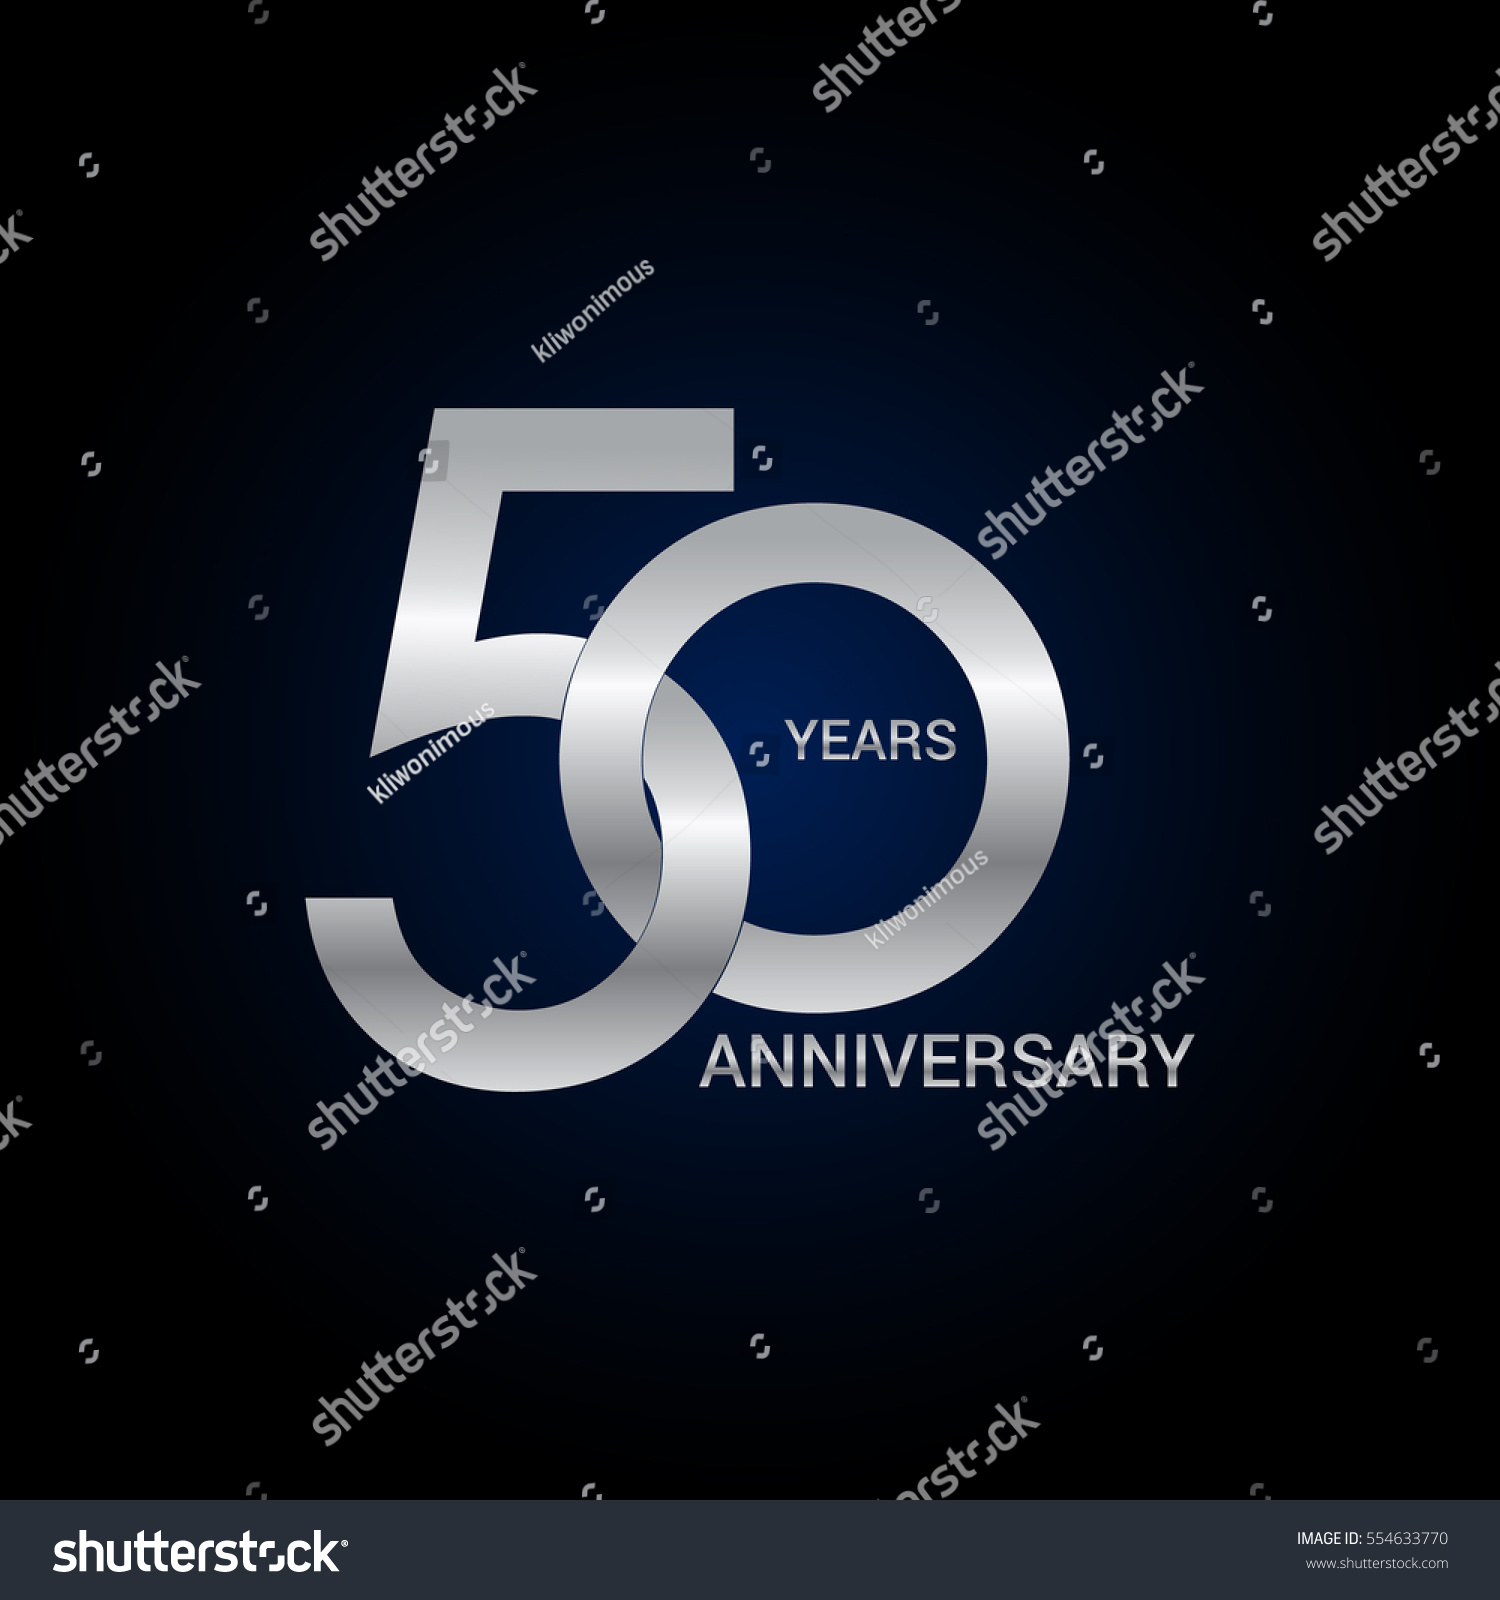 50 years anniversary silver signs symbols stock vector 554633770 50 years anniversary silver signs symbols simple logo design isolated on dark background buycottarizona Choice Image